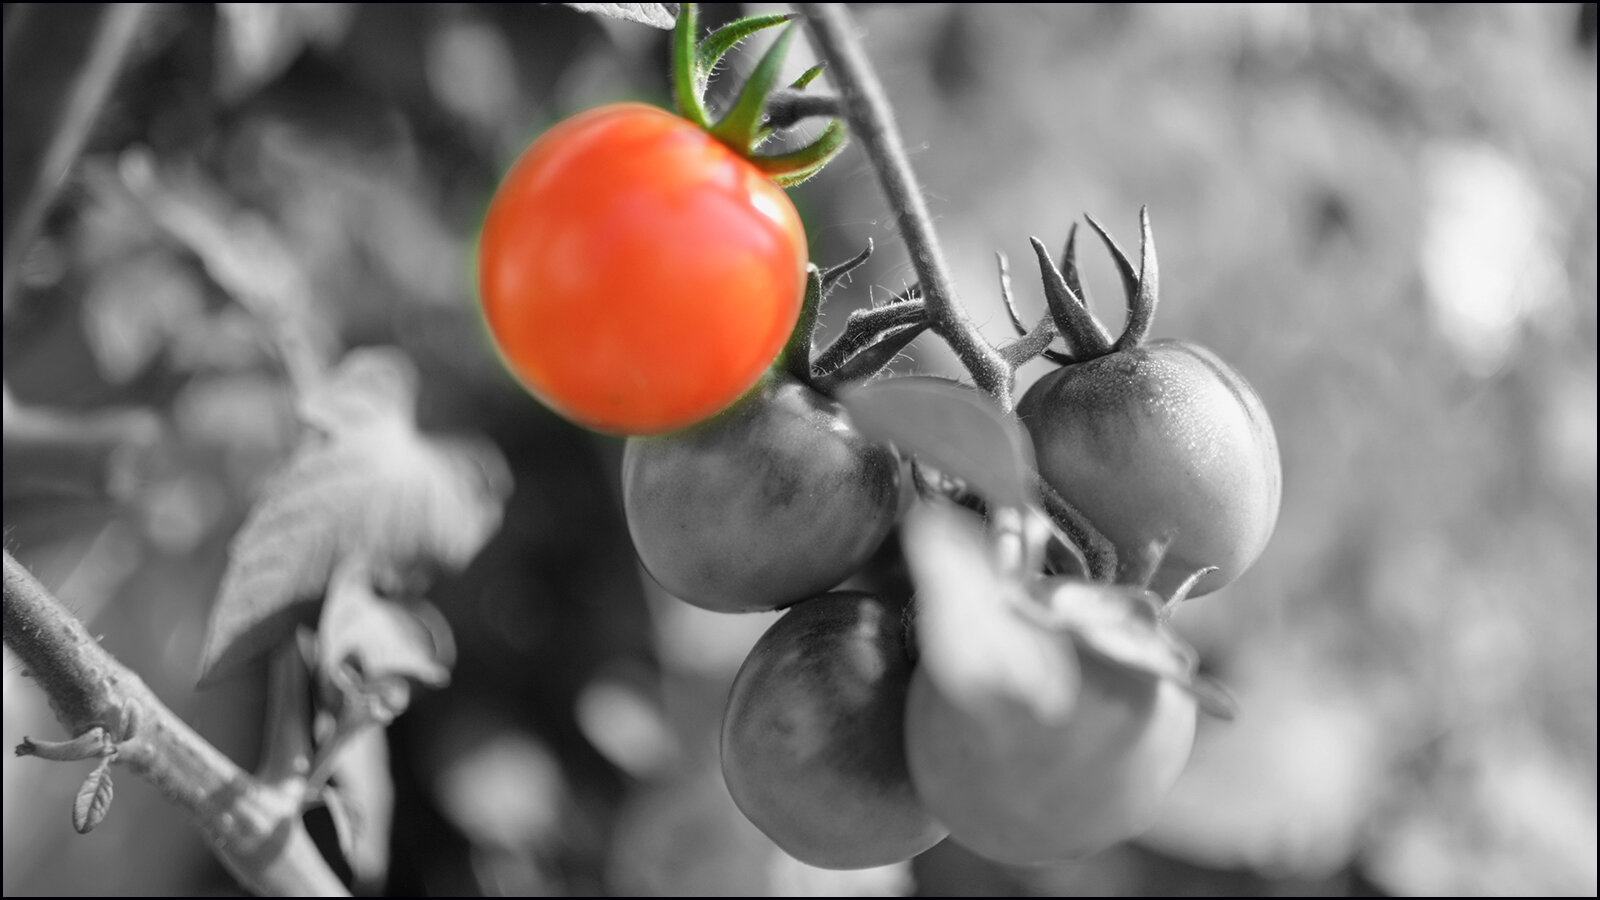 slowly, the tomatoes are turning red.  (c) mark somple 2019